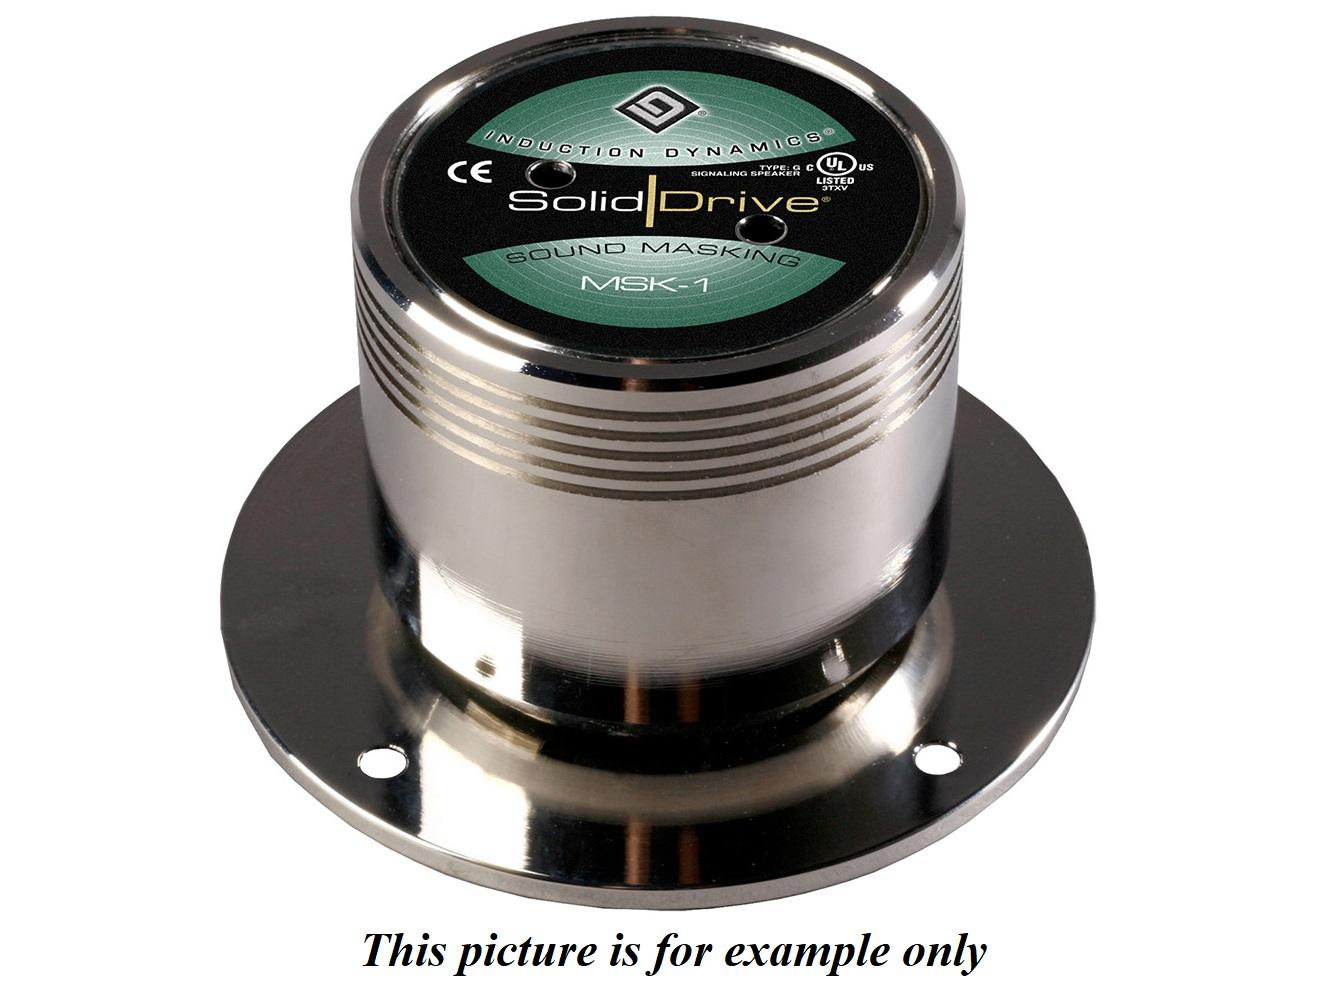 Soliddrive MSK-1G Solidrive SOUND MASKING GLASS